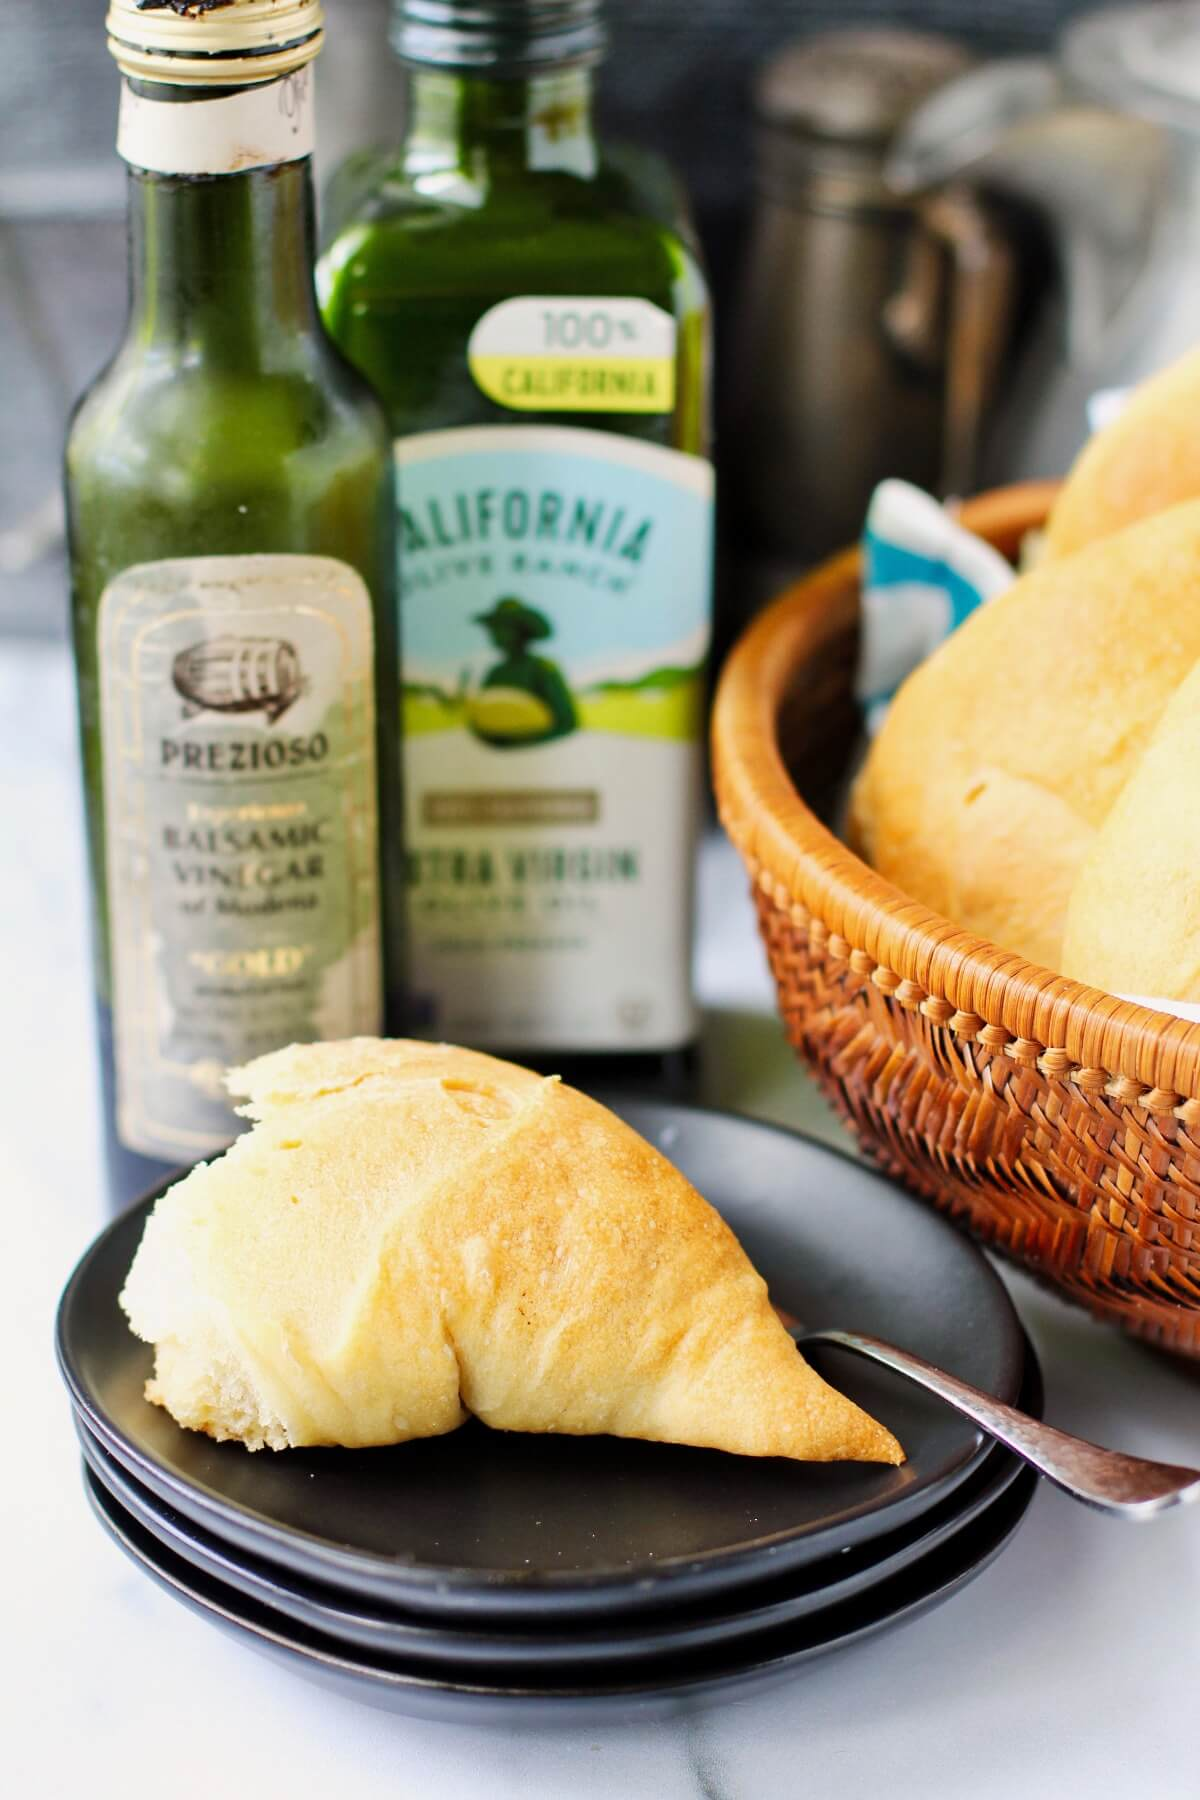 Olive oil wreath bread pieces